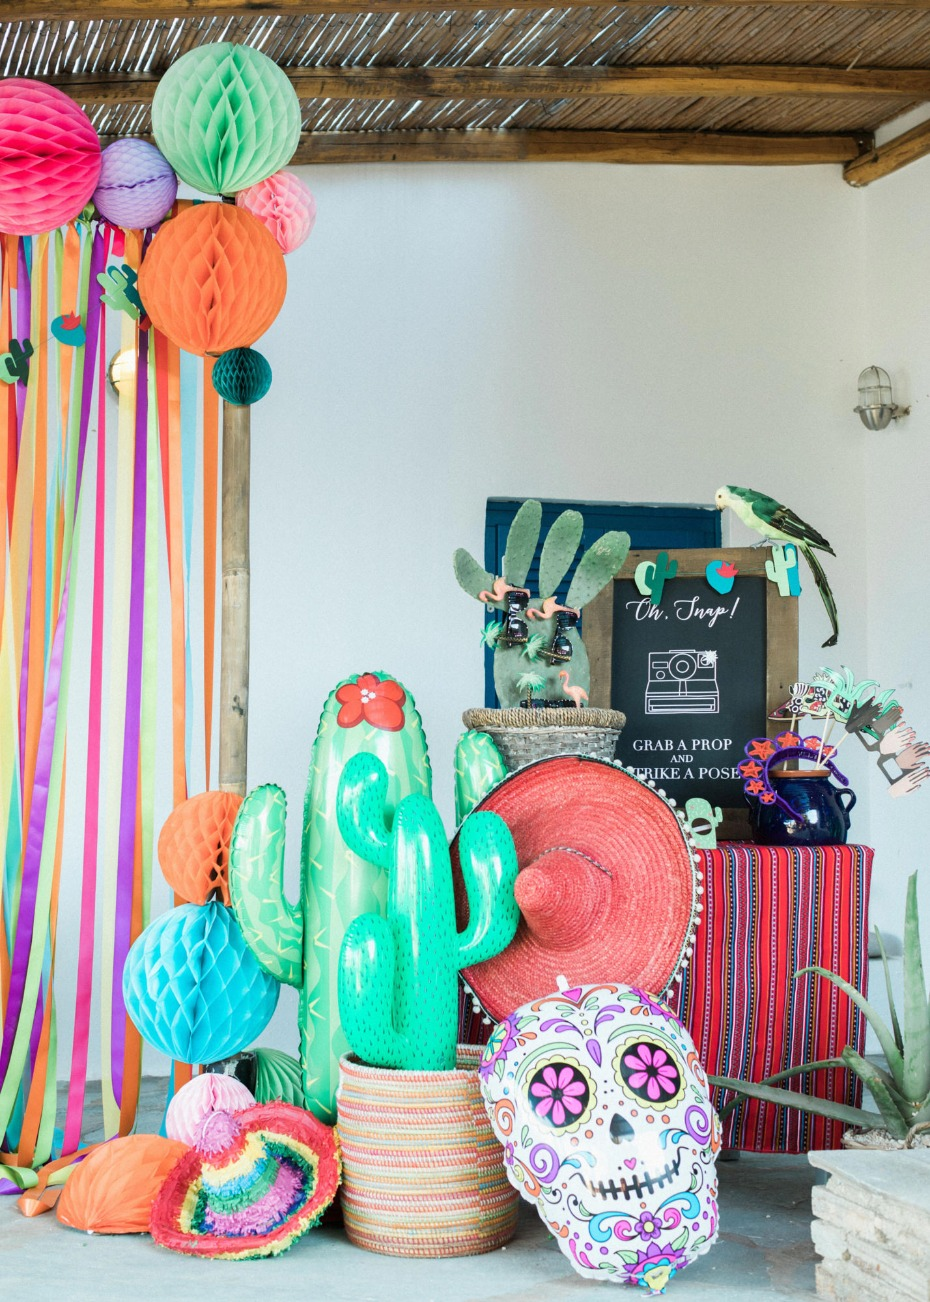 Fiesta themed photo booth